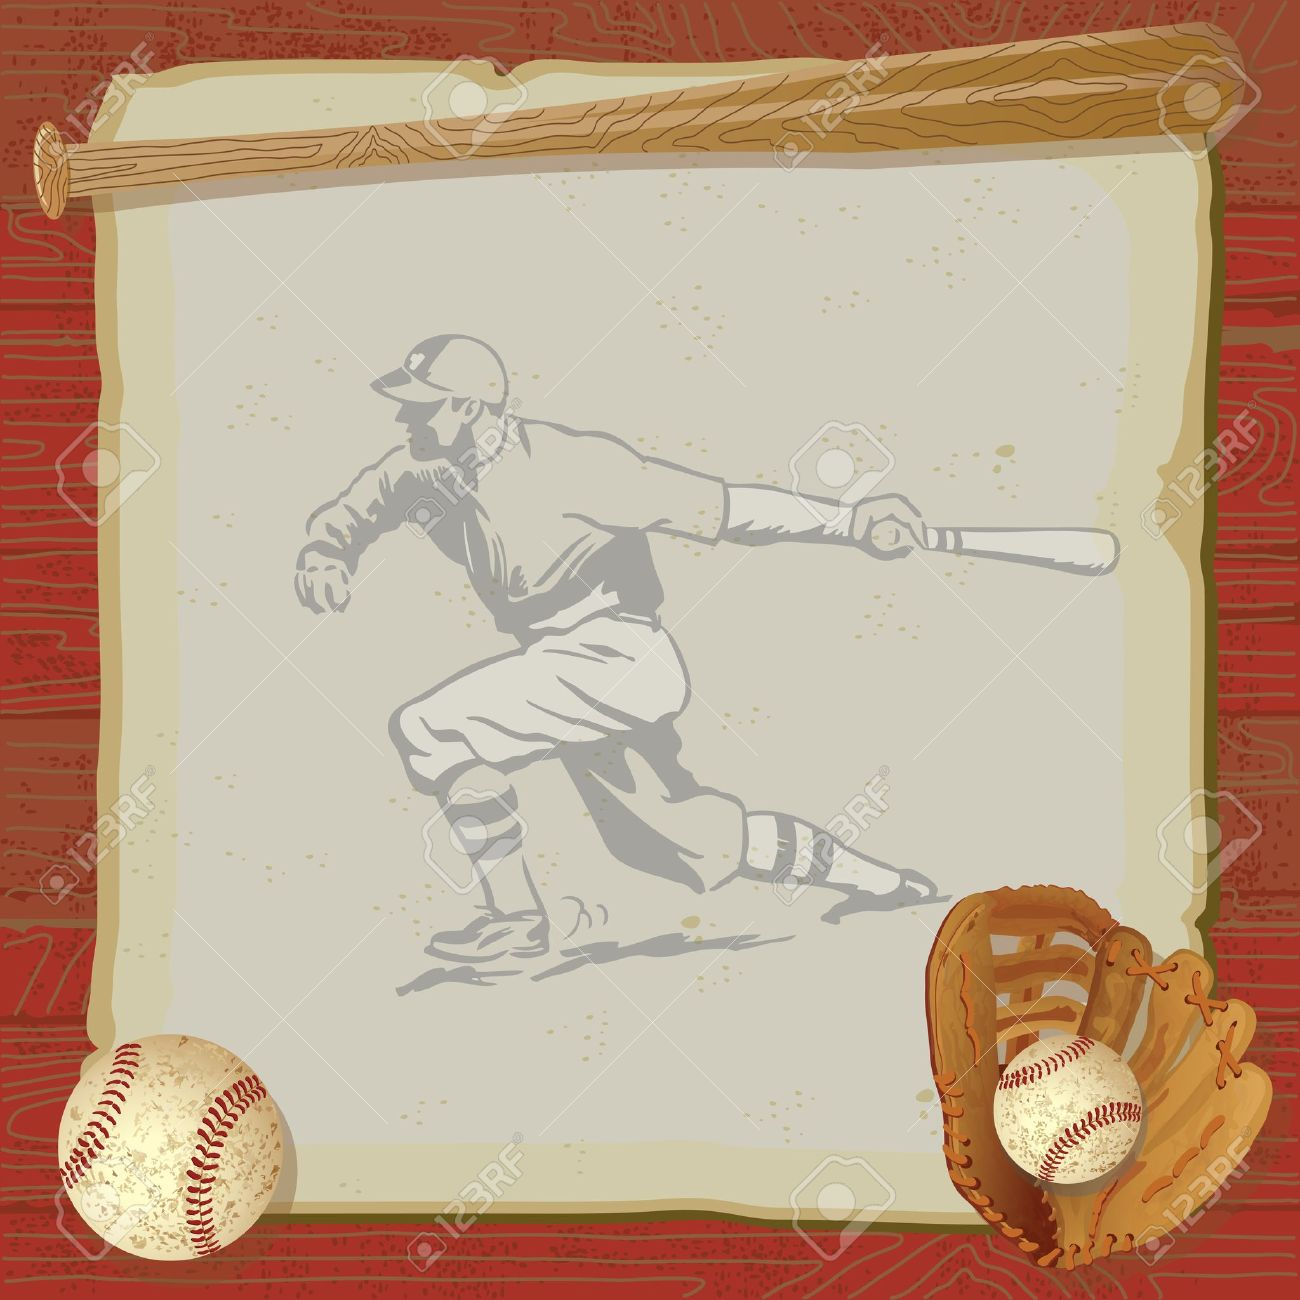 Rustic Vintage Baseball Party With Old Fashioned Glove And Bat On Top Of